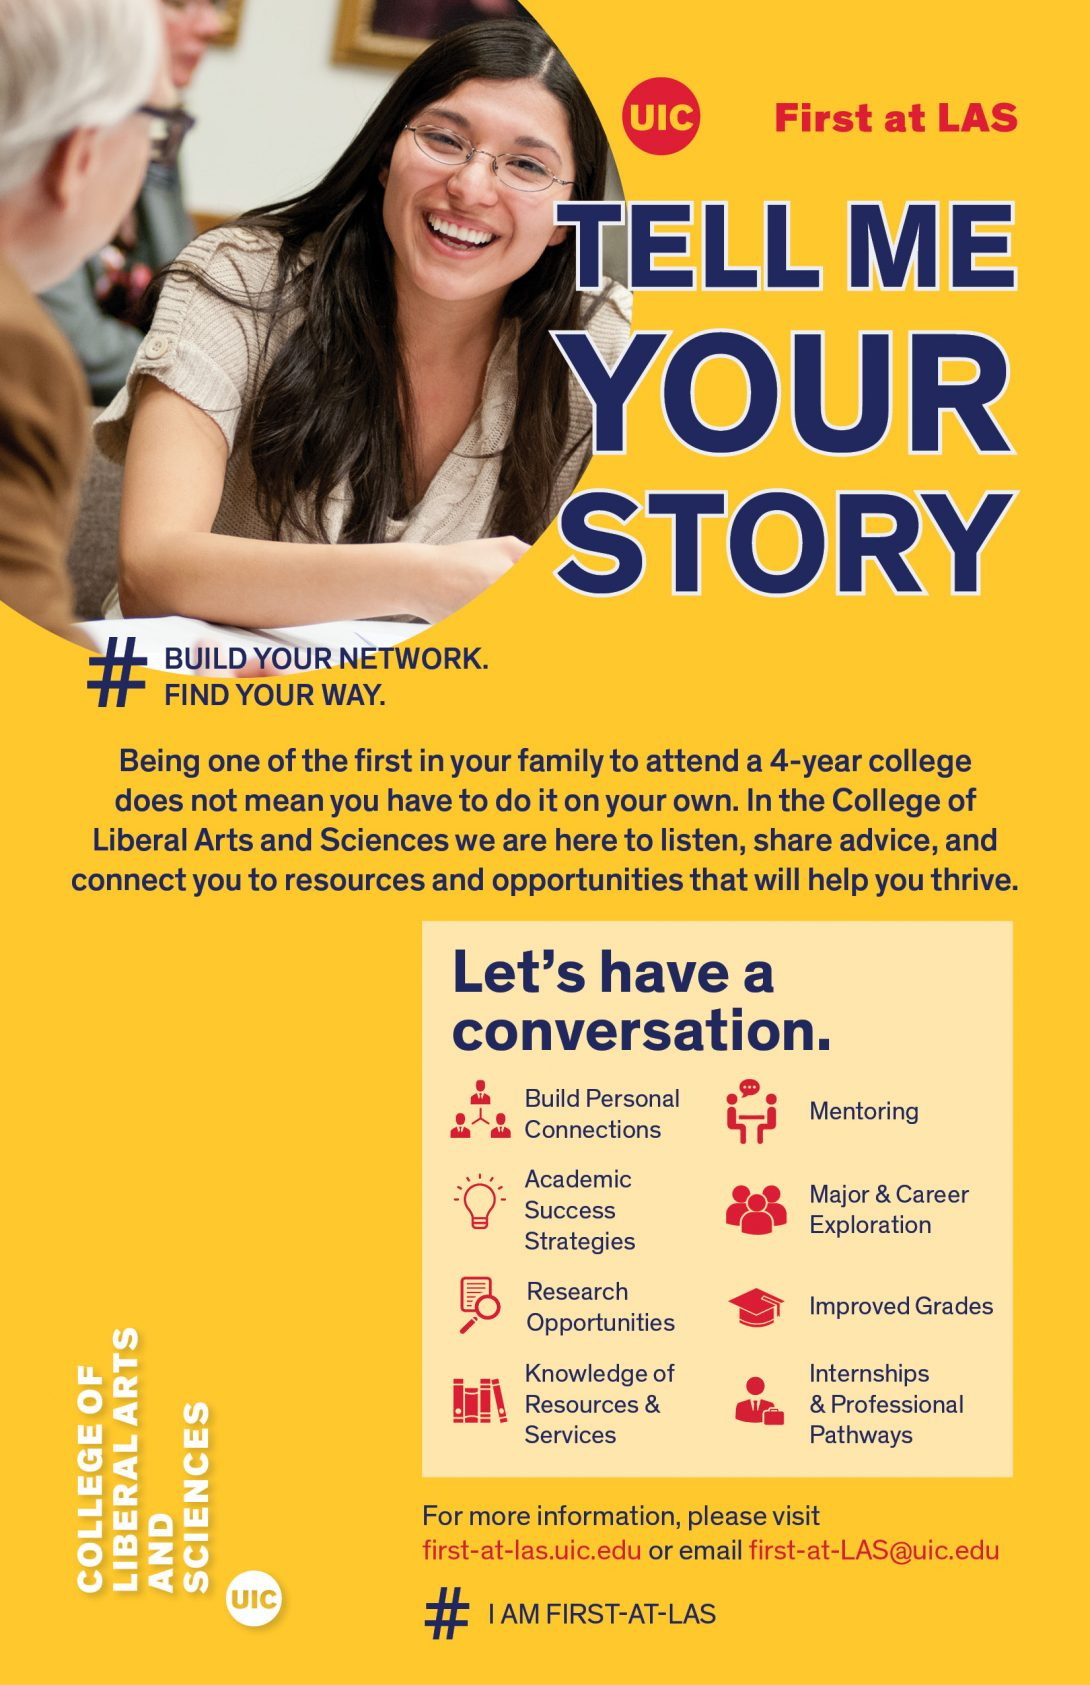 Tell me your story poster - poster text available in the text box